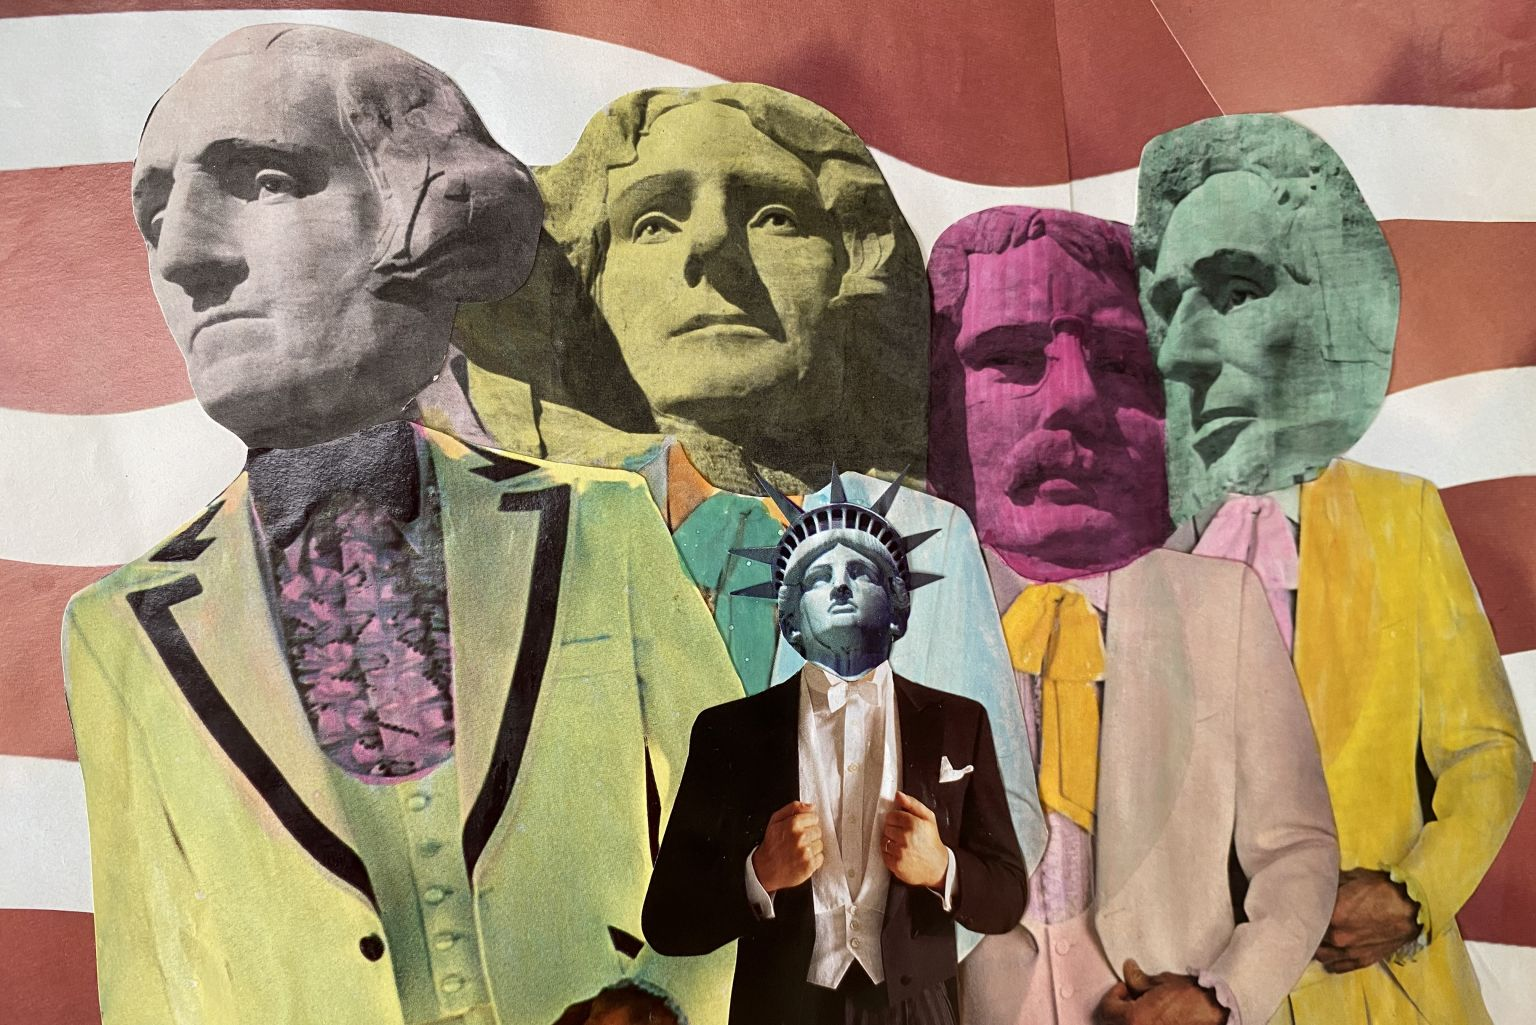 Filmstill: Collage of the Faces of the Statue of Liberty and important persons of the US American history